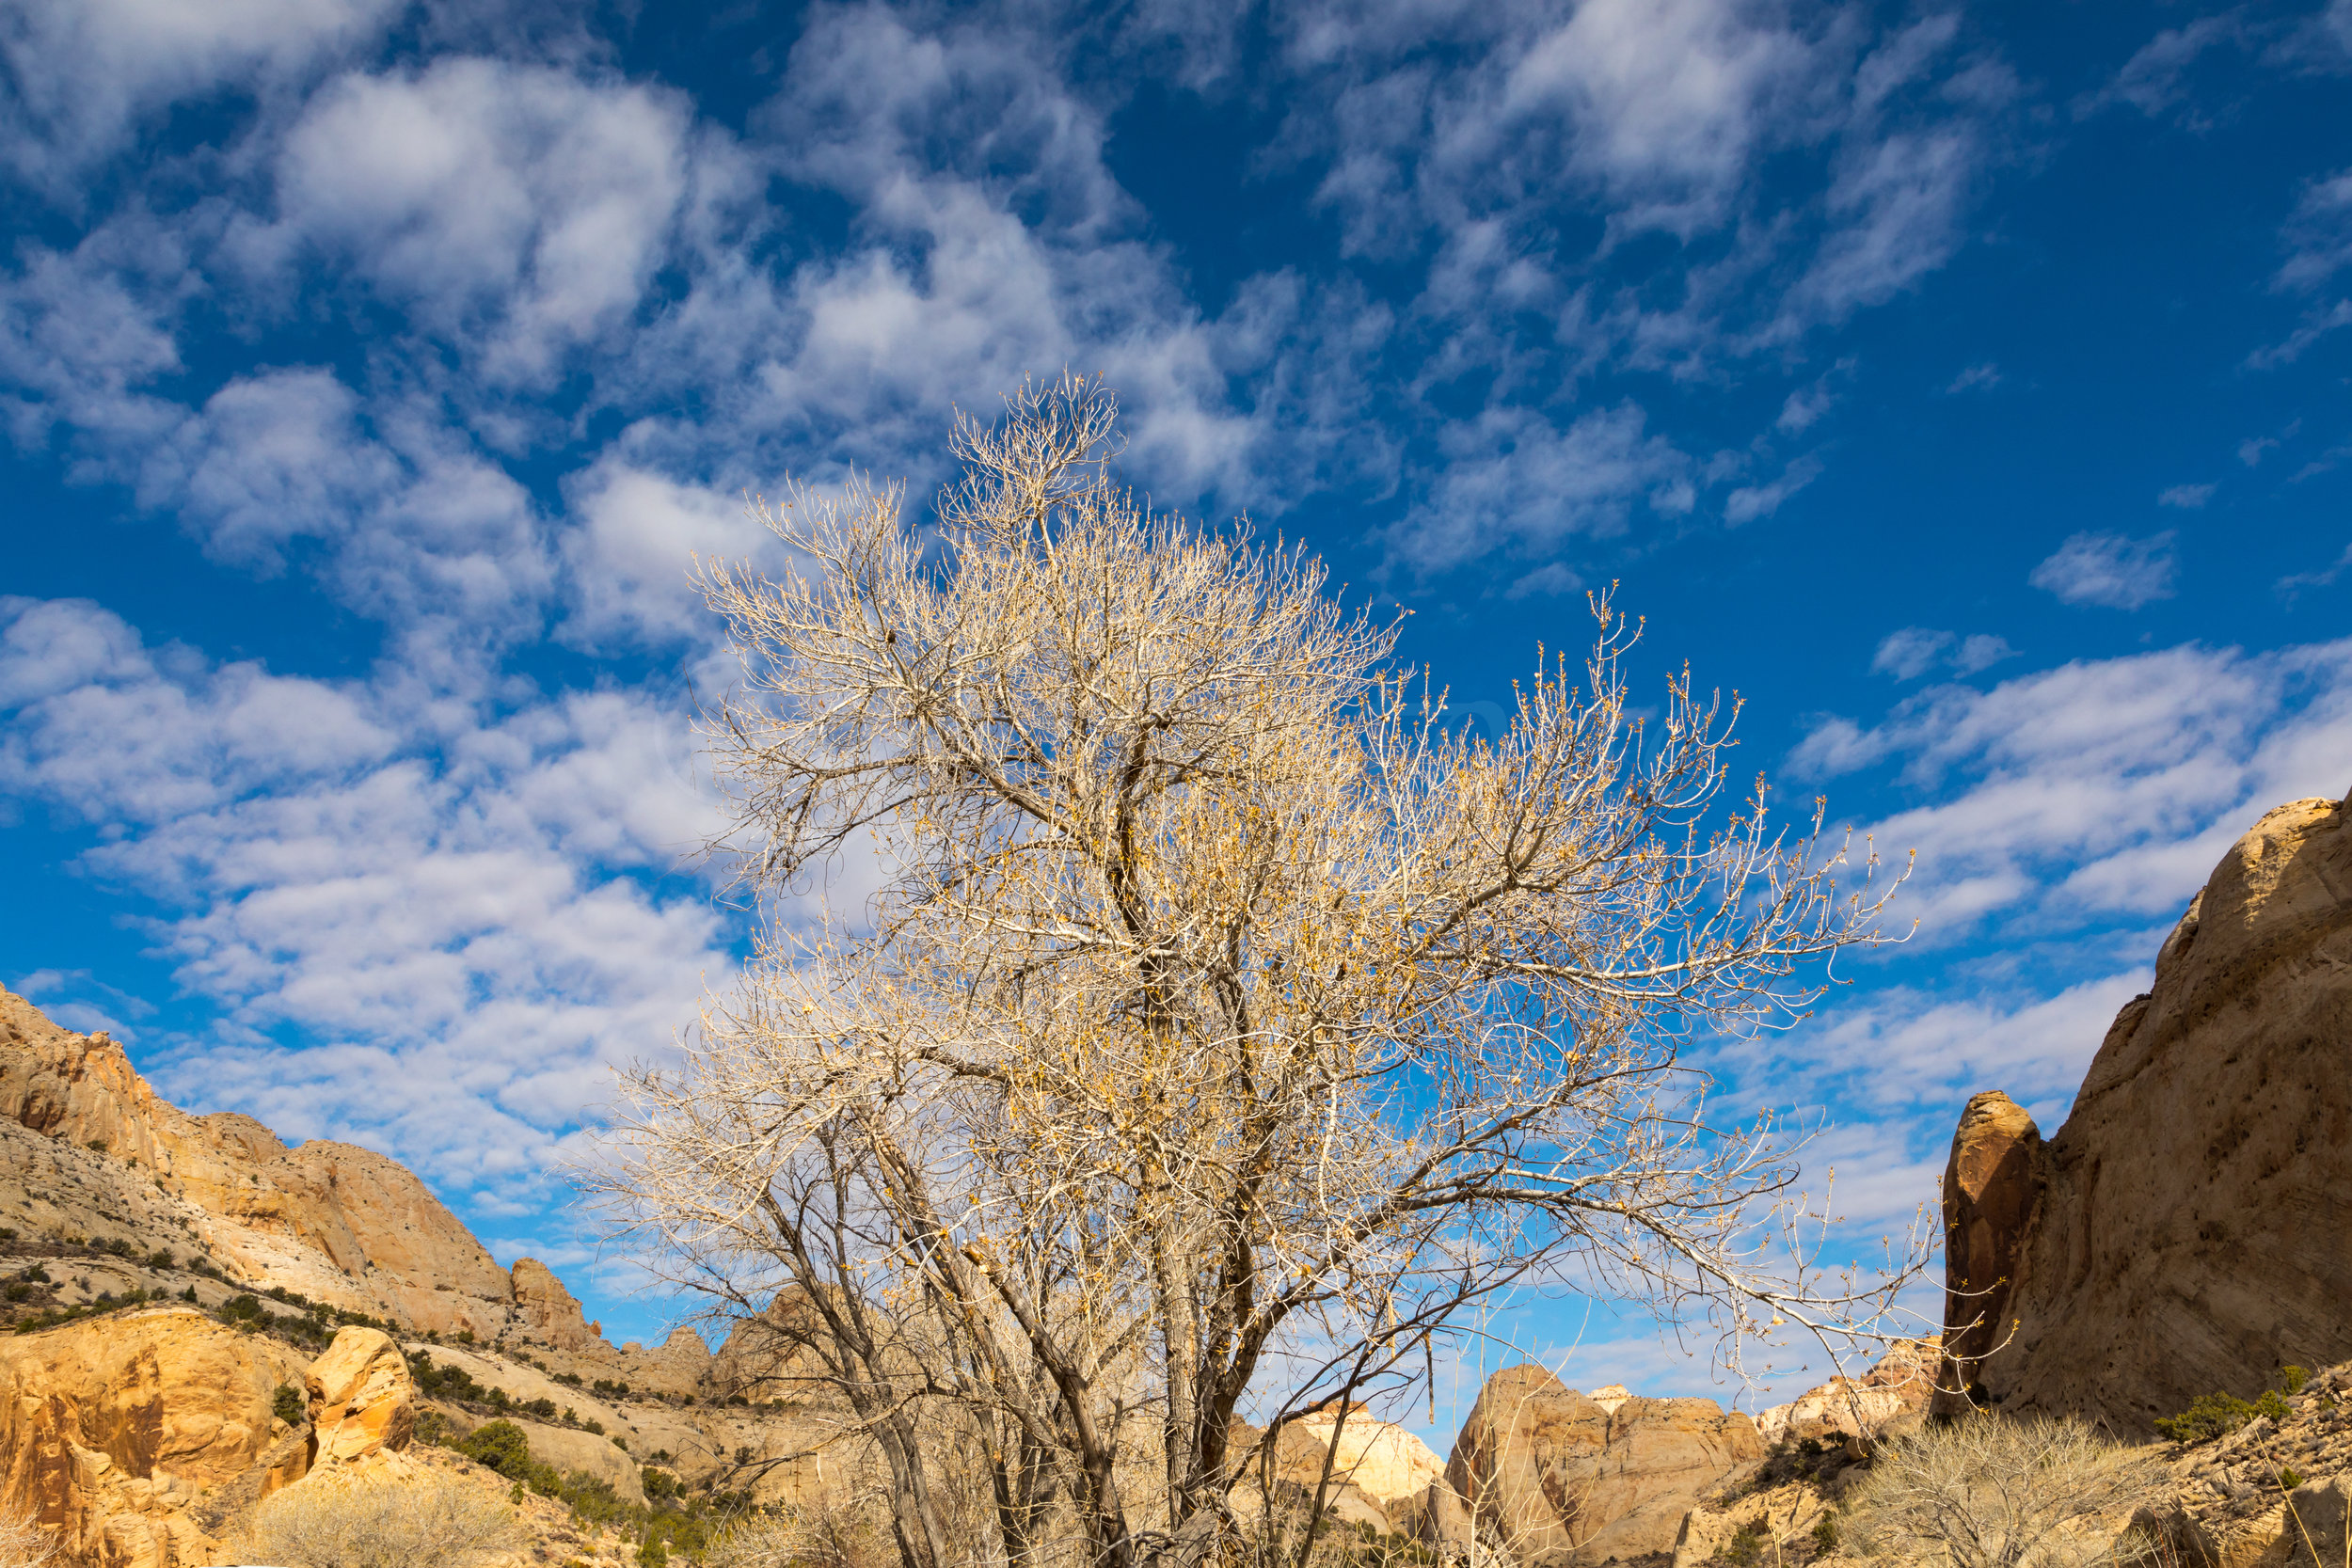 Capitol Reef National Park, Image # 6750